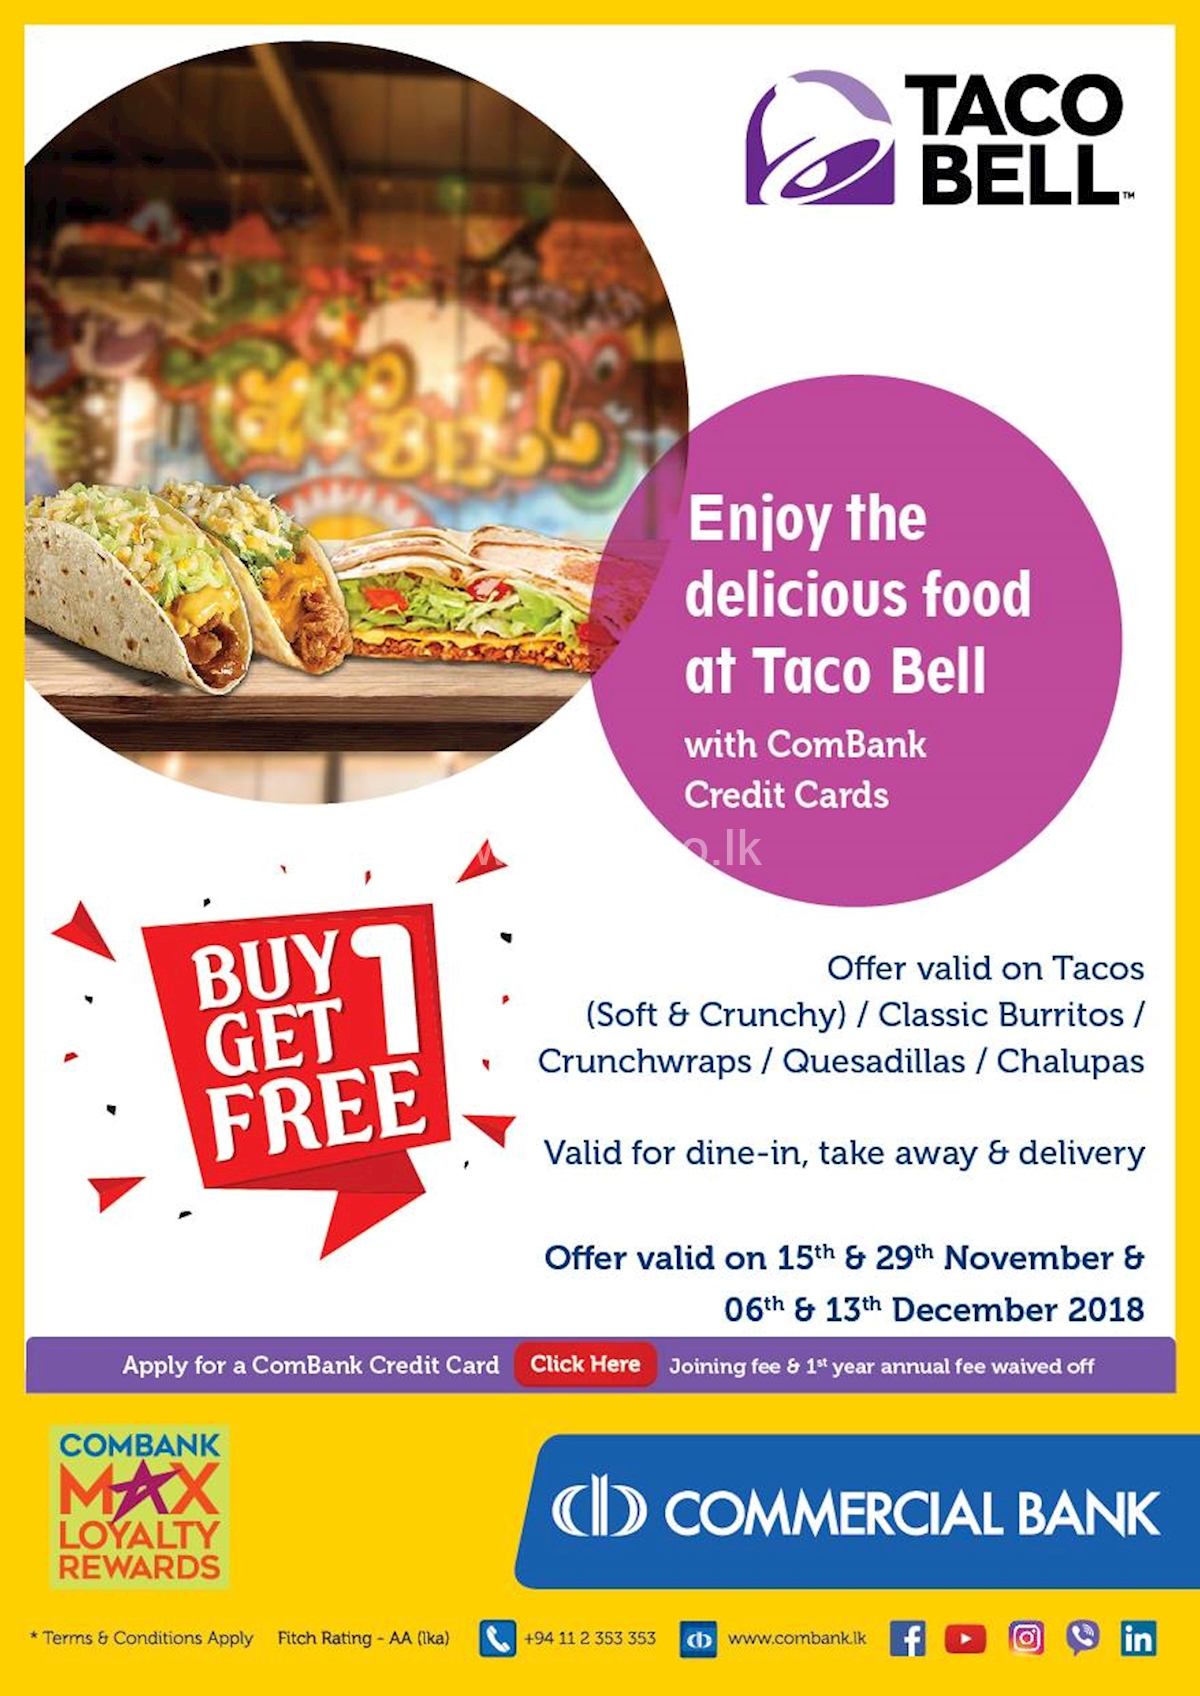 Enjoy the delicious food at Taco Bell with Combank Credit Cards